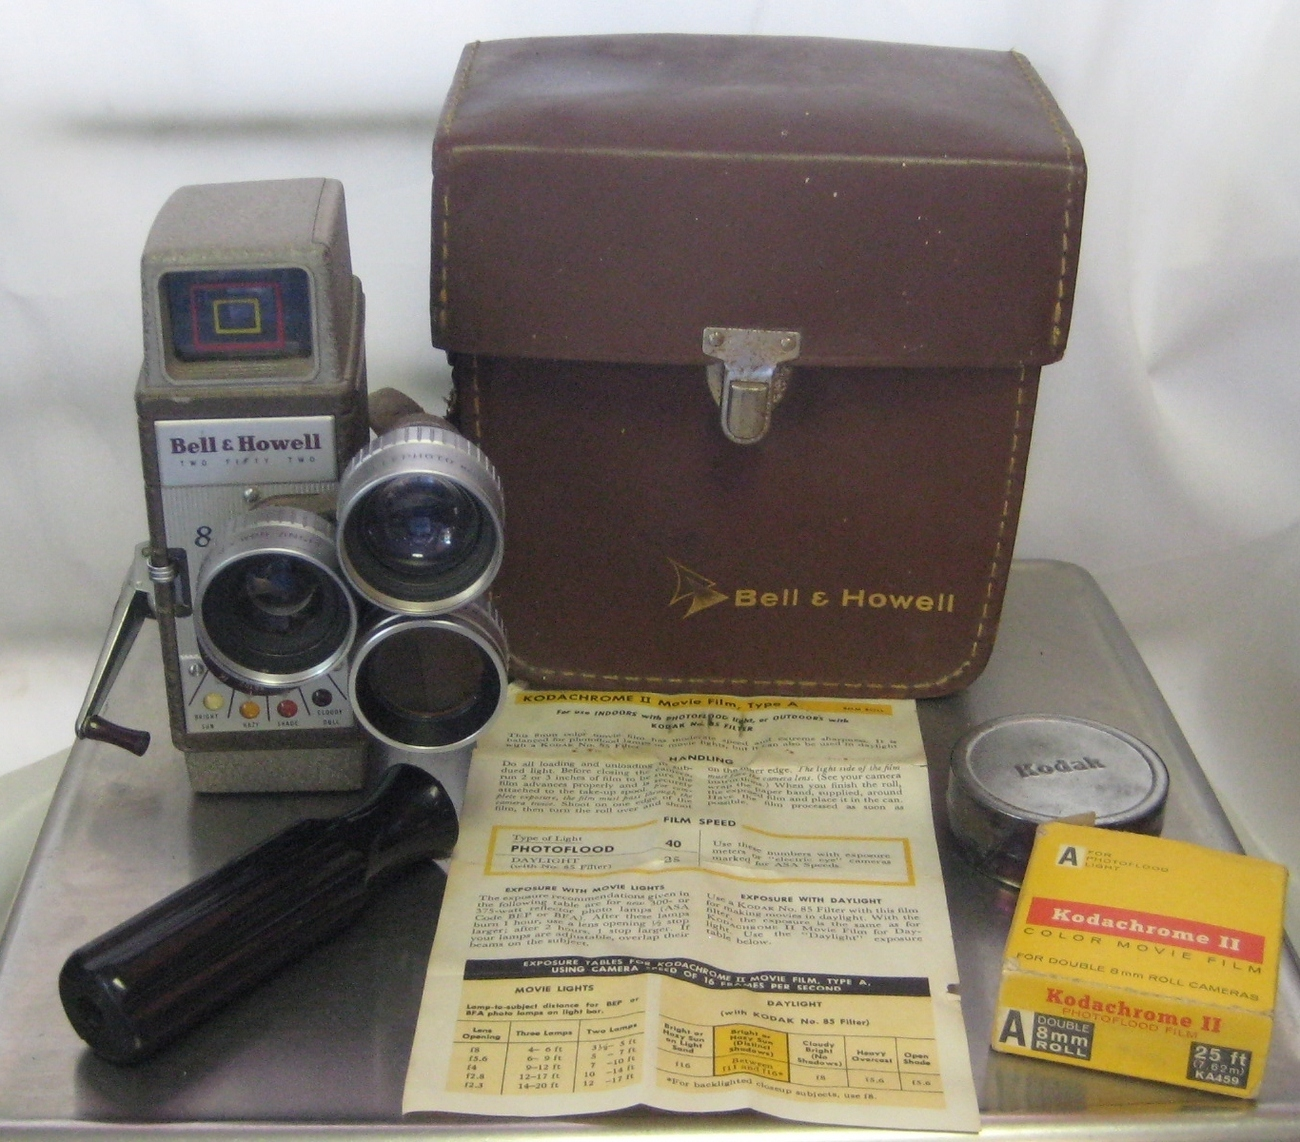 Bell Howell 252, 25 Feet Type A 8mm Color Film, Three Lenses On Turret, Case